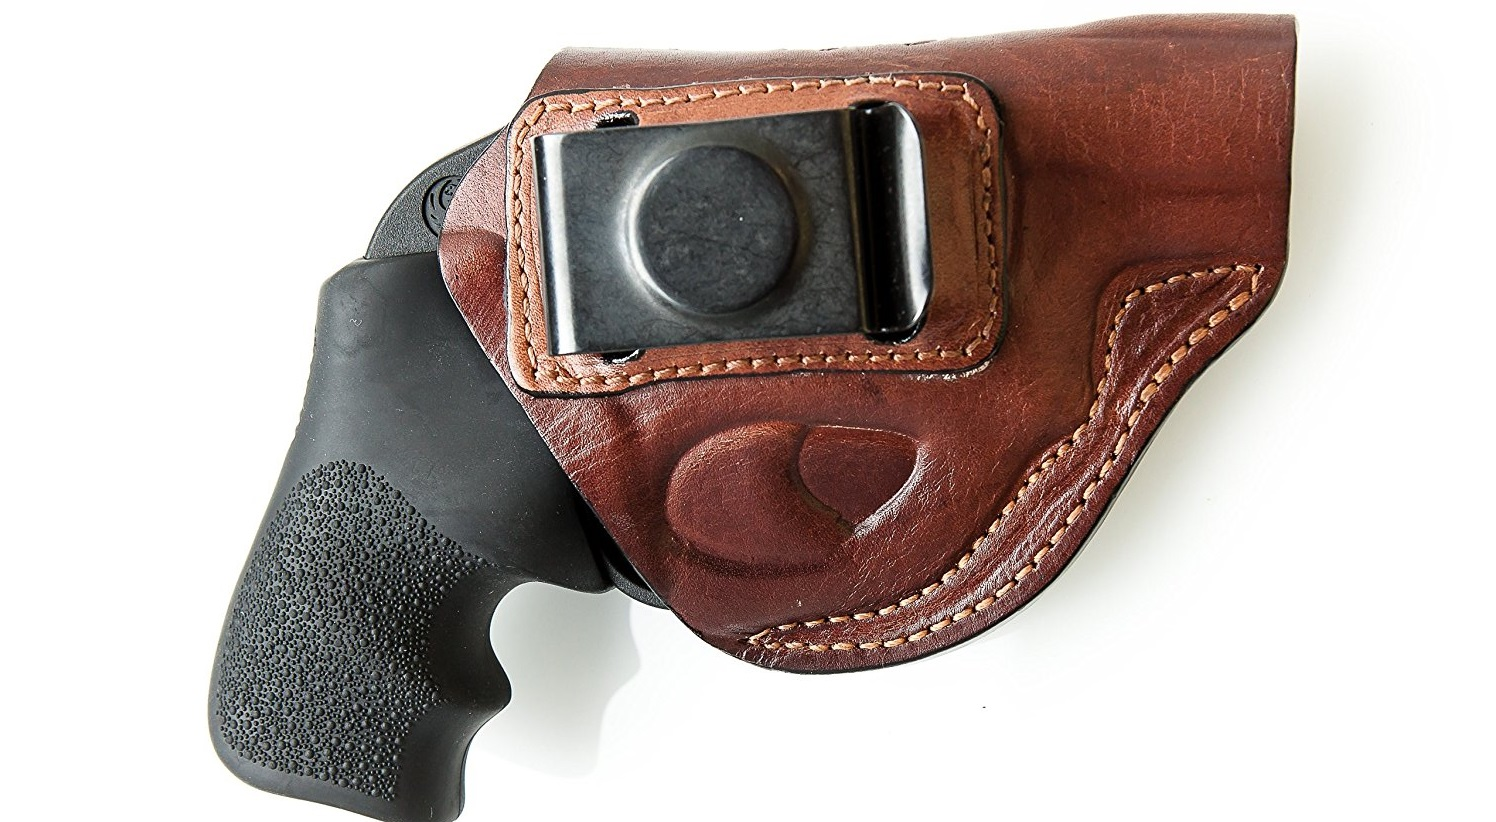 Best J Frame Holster (for IWB, OWB, Ankle, Pocket & Shoulder)